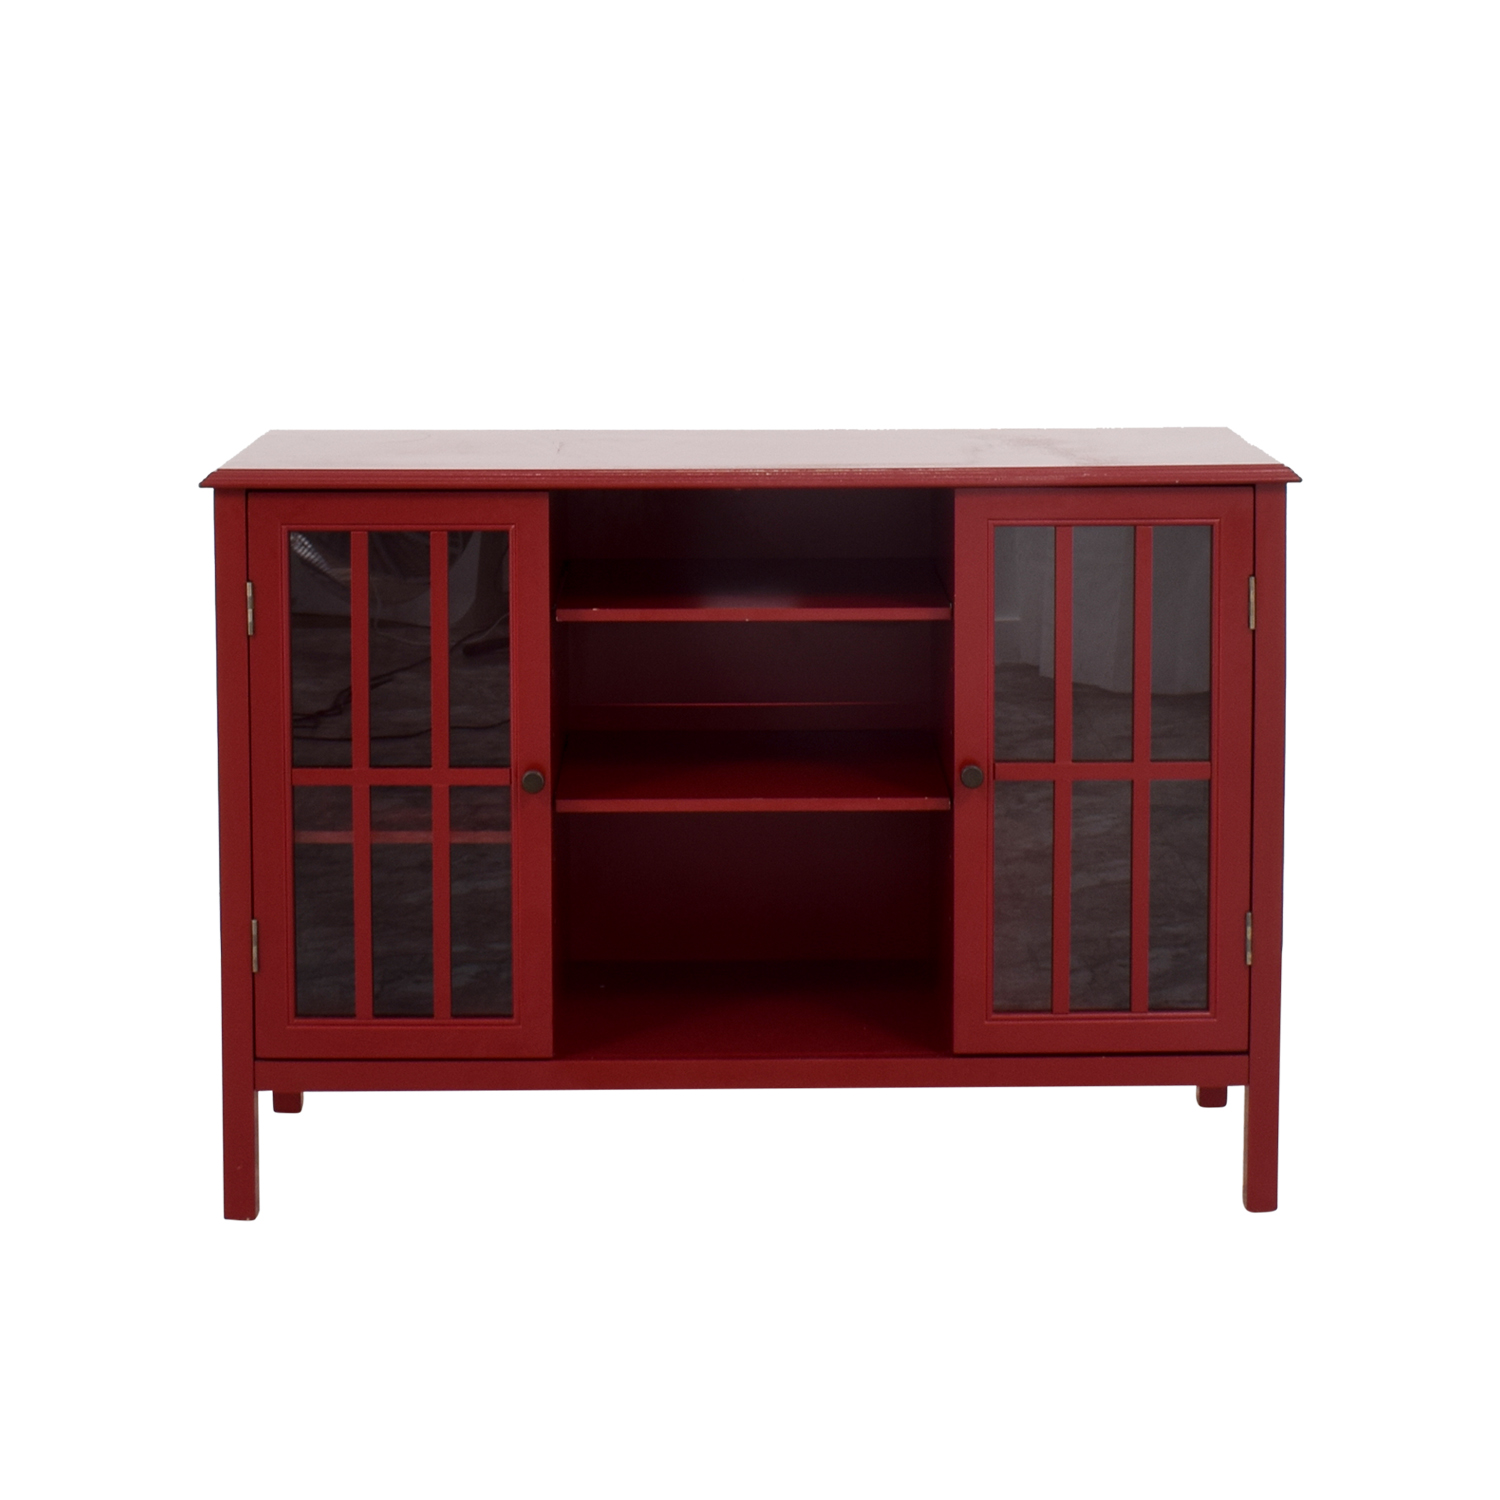 Two Cabinet Doors With Shelf Target Interior Design 3d